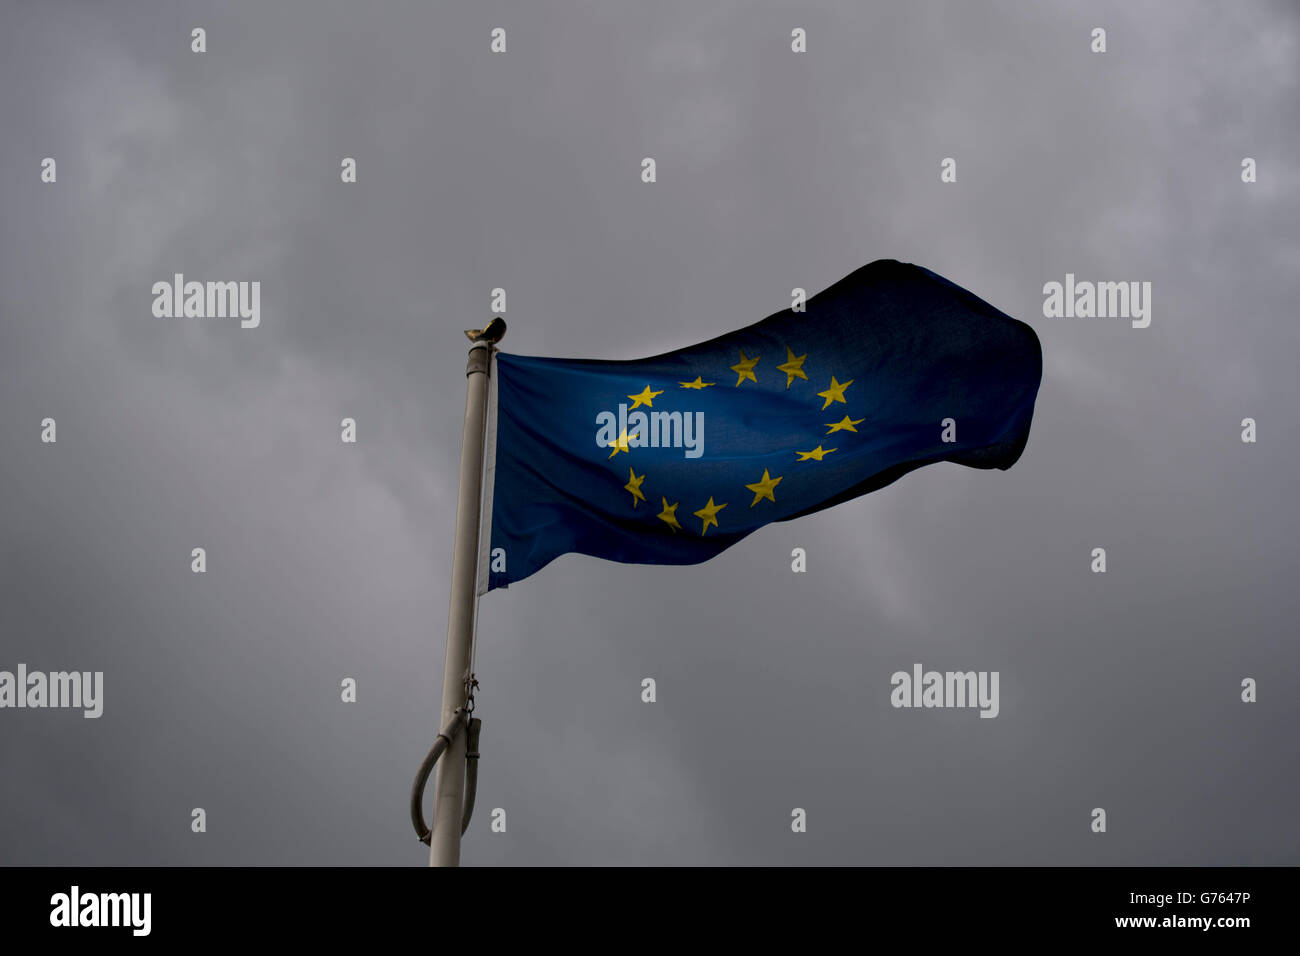 European Union (EU) flag blowing in the wind with dark storm clouds behind. Britain left the EU in a recent referendum. - Stock Image